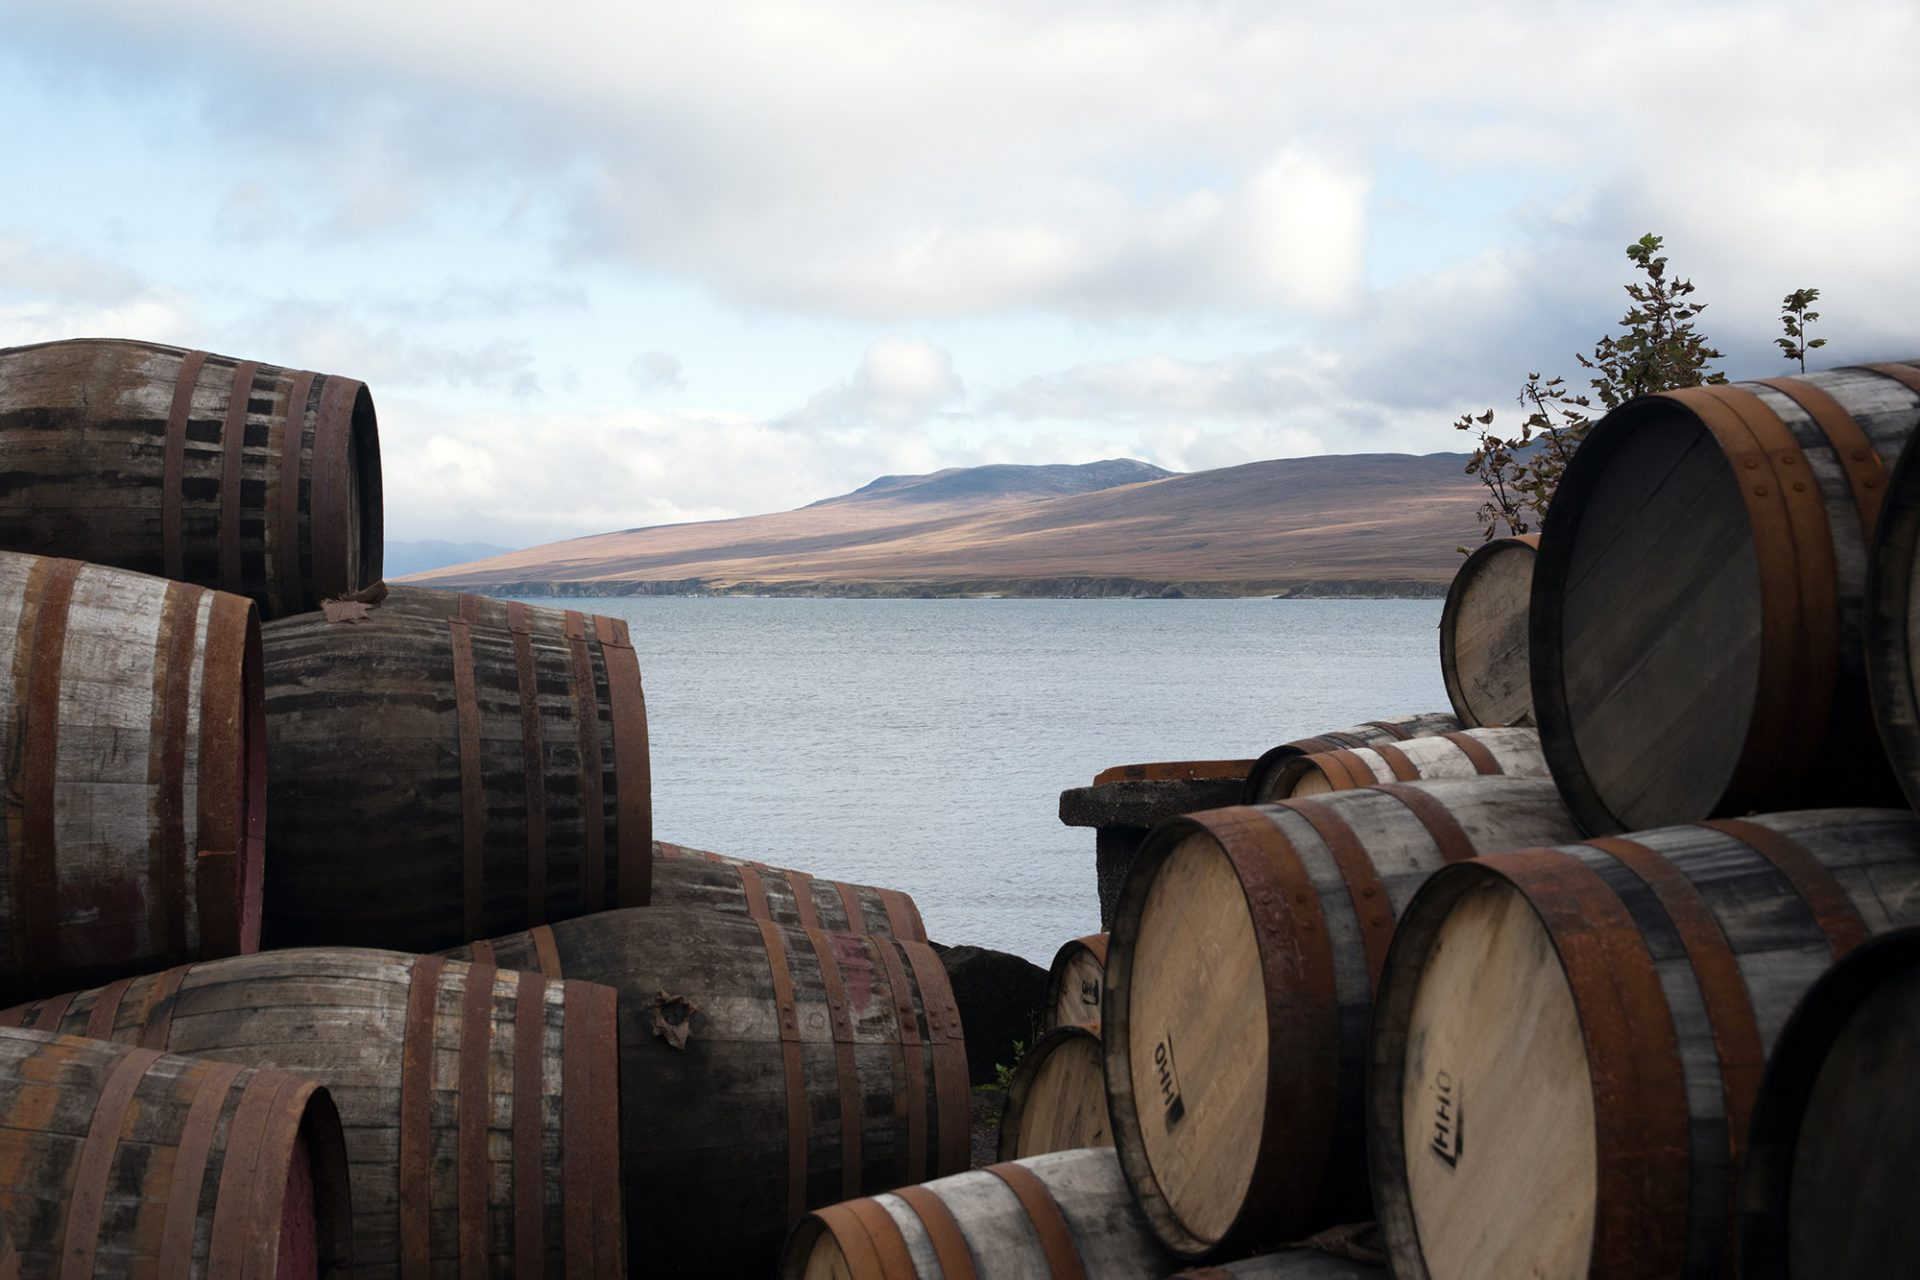 An image of whisky barrels with a scenic view to represent our Scottish Spirit tour, a Scottish whisky tour